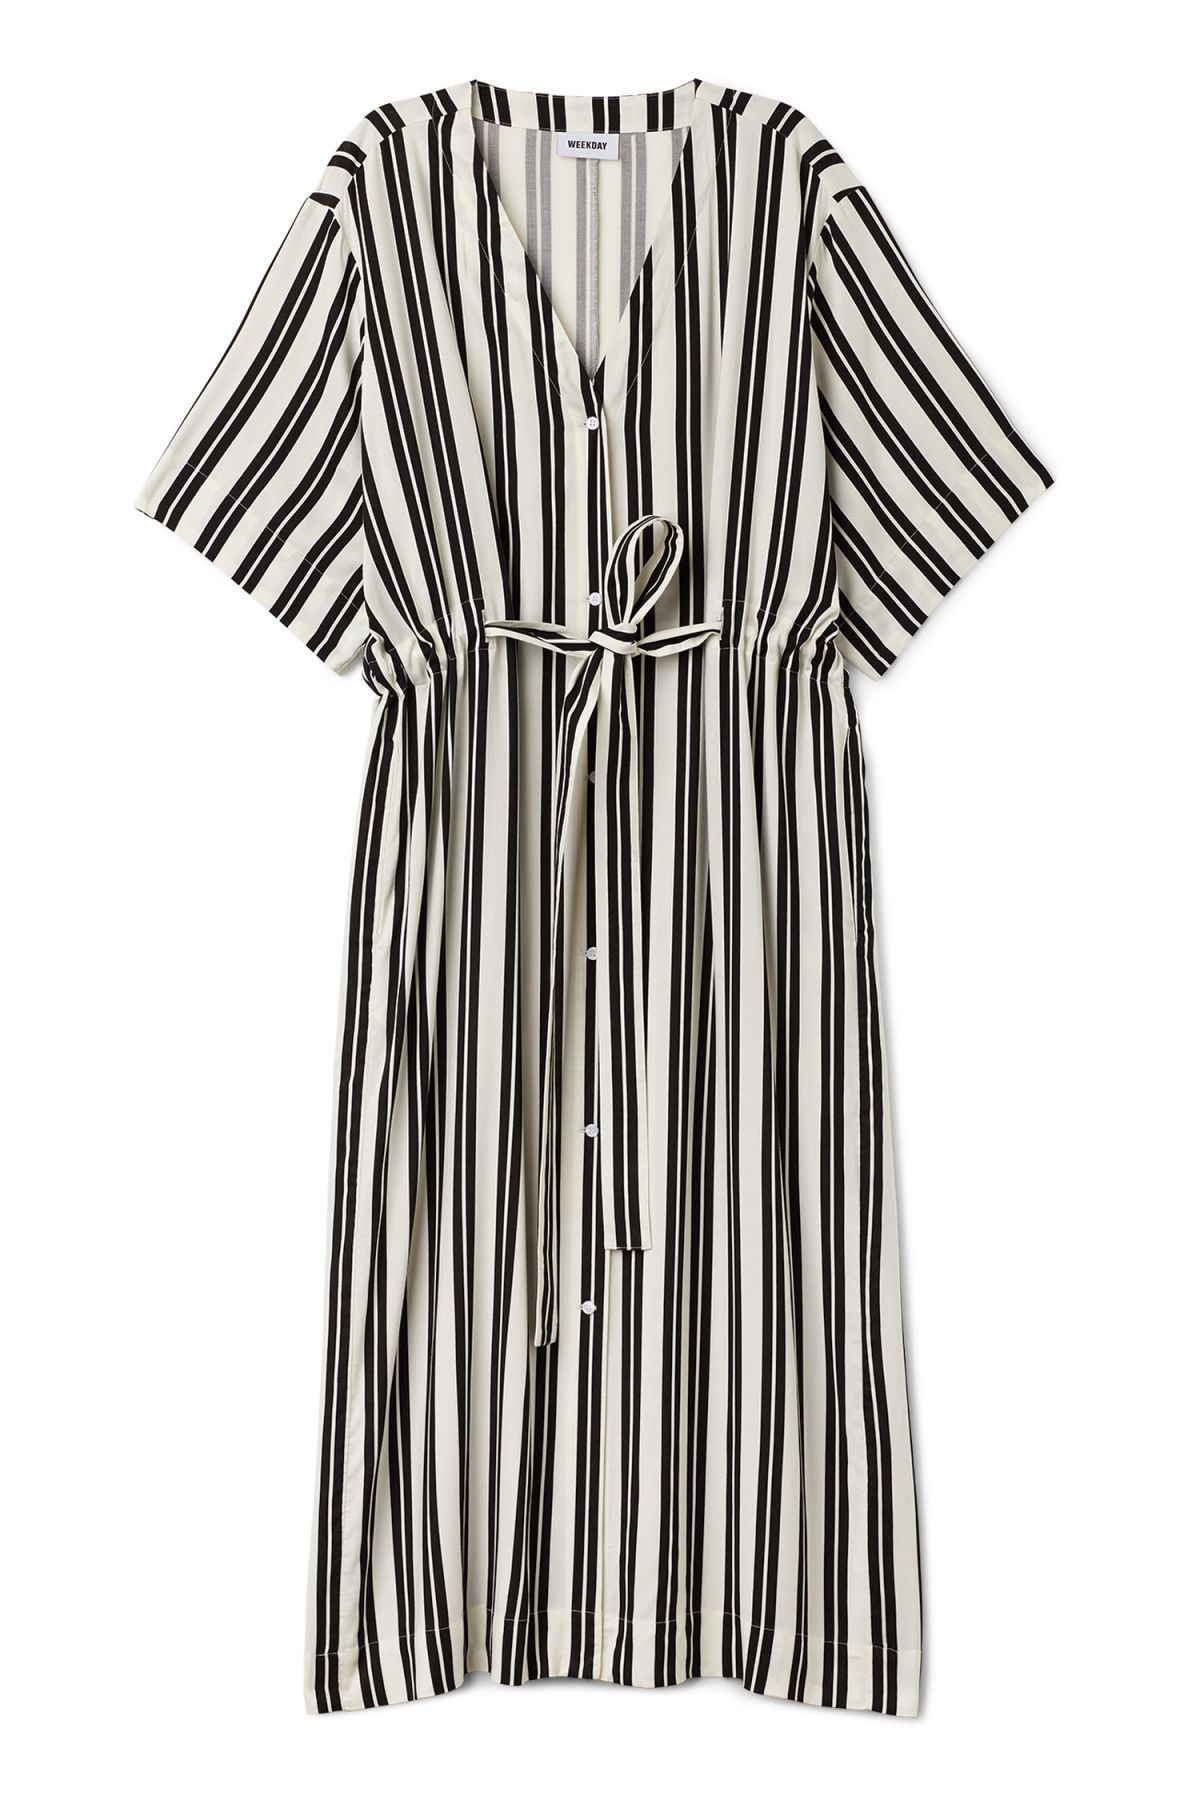 905d356f4bcd Front image of Weekday chalk shirt dress in black